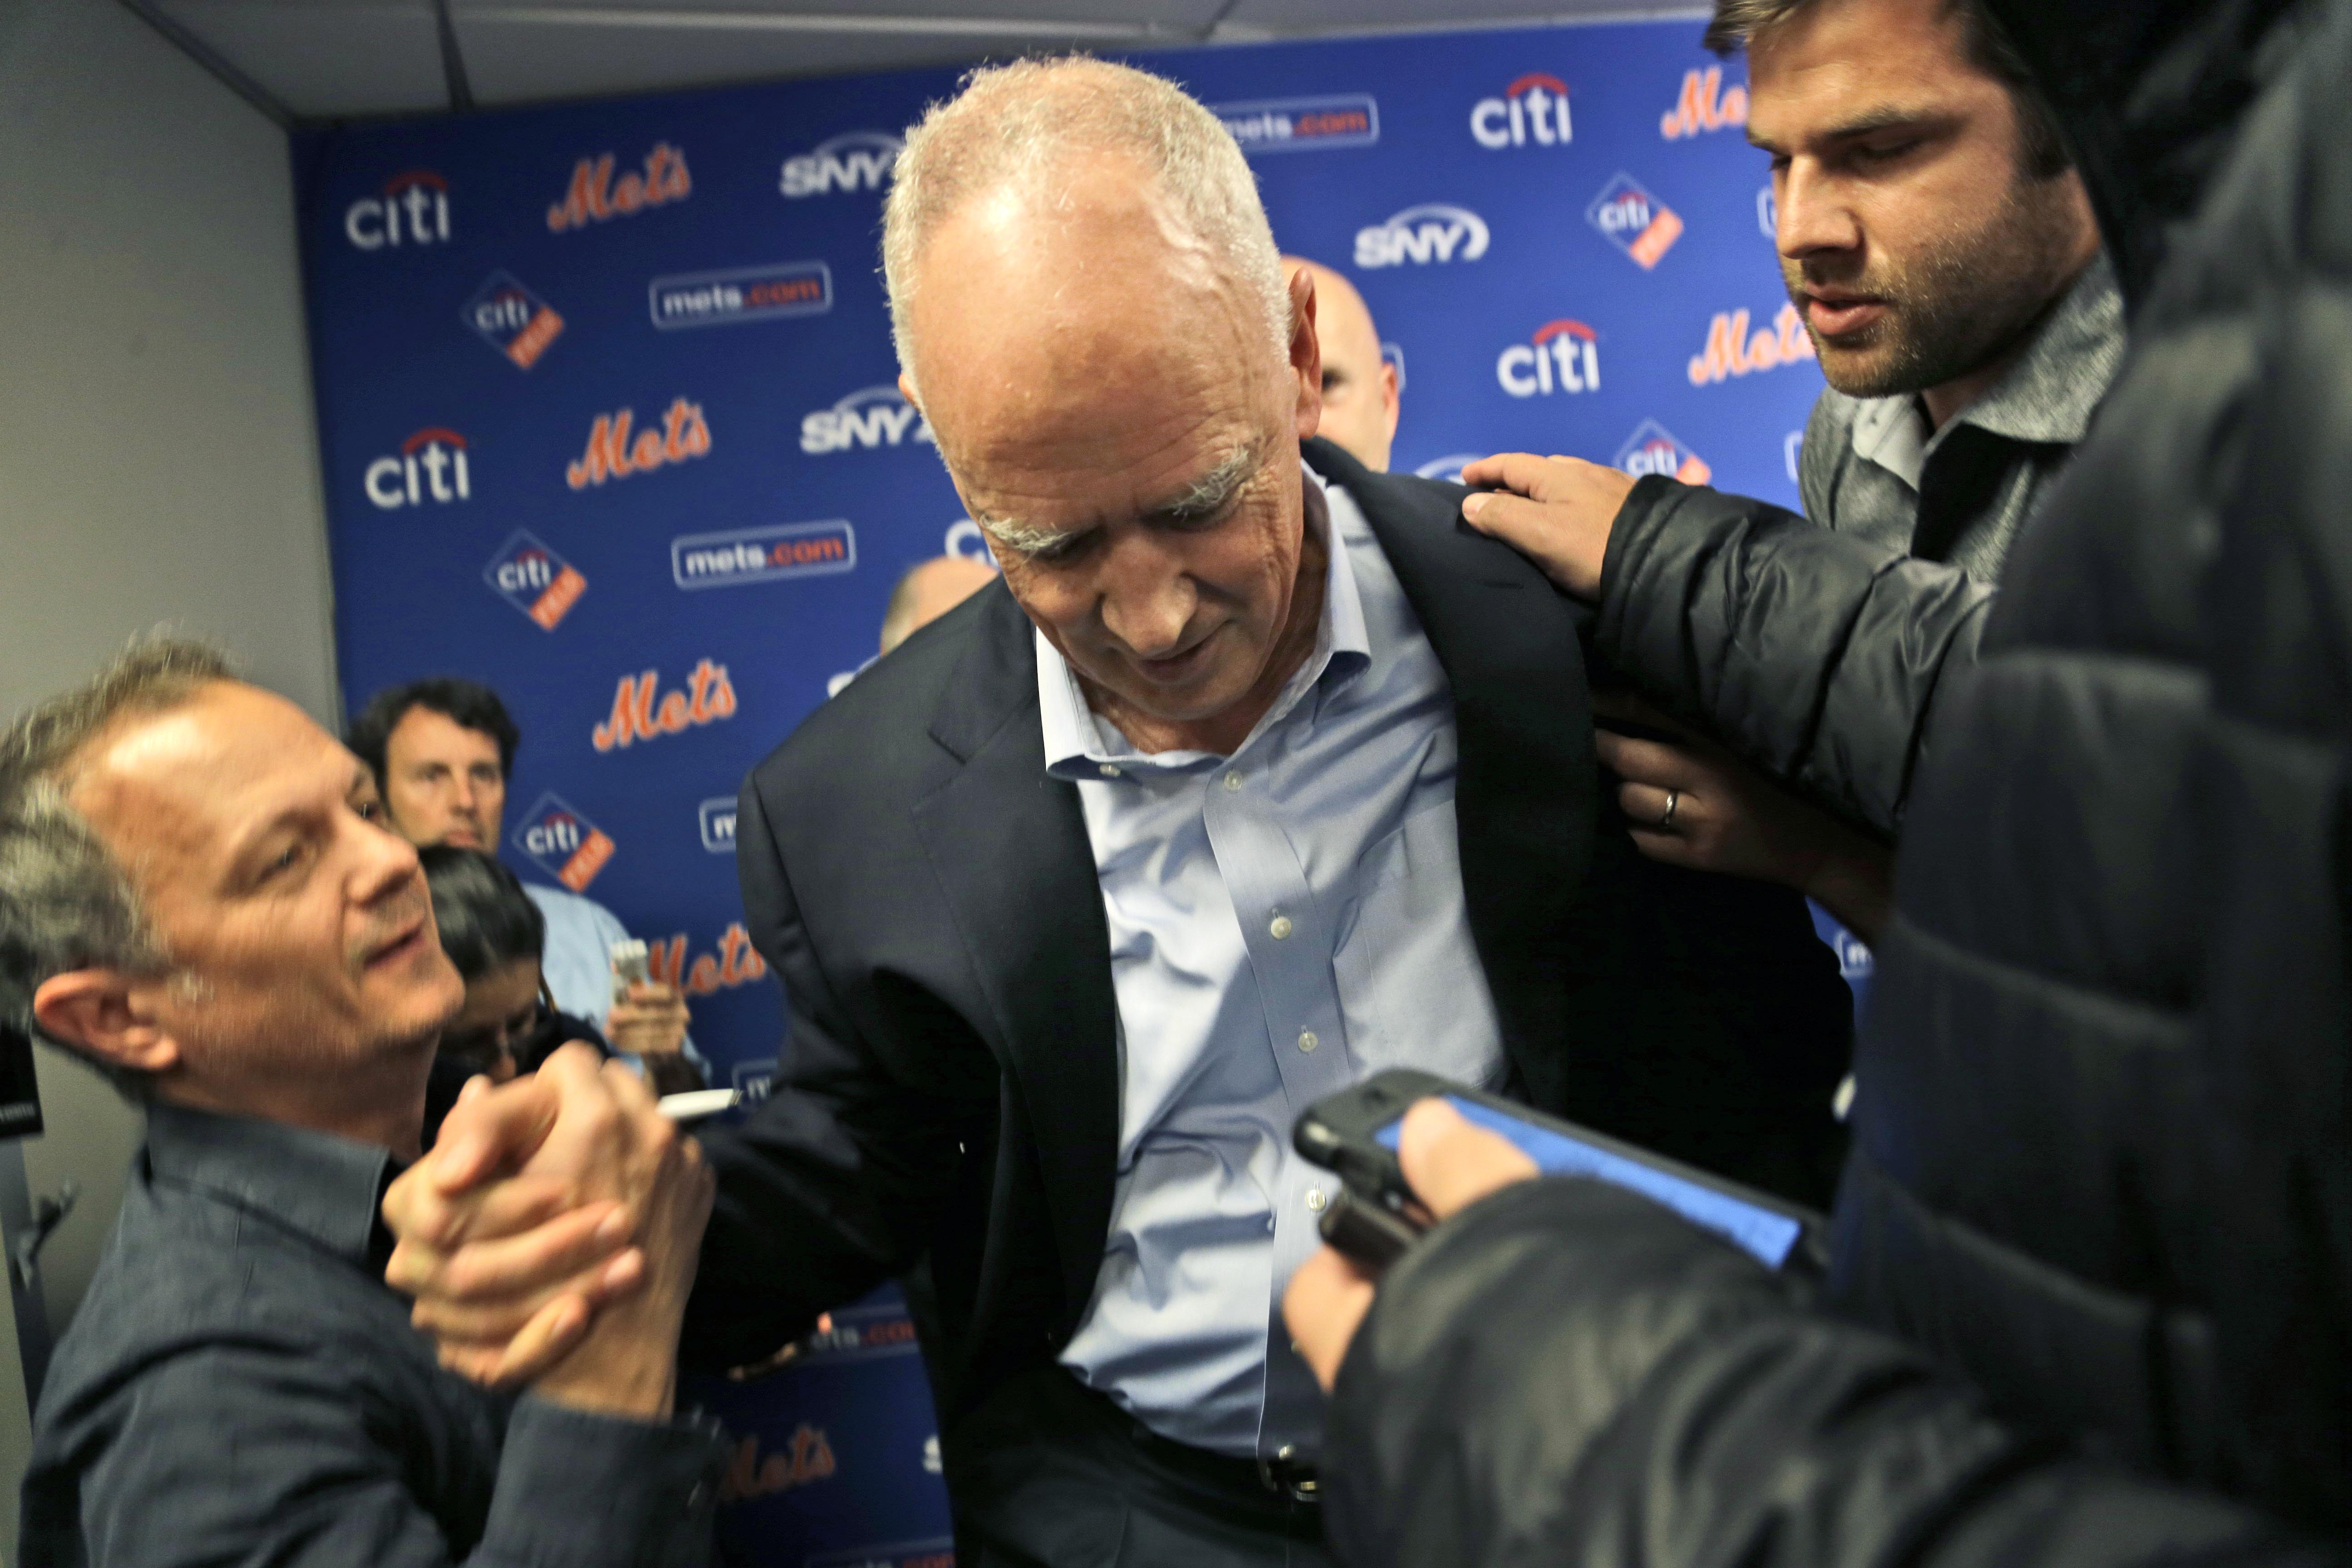 New York Mets g eneral manager Sandy Alderson is assisted to his feet by reporters after collapsing during a news conference in New York, Wednesday, Nov. 4, 2015. (AP Photo/Seth Wenig)